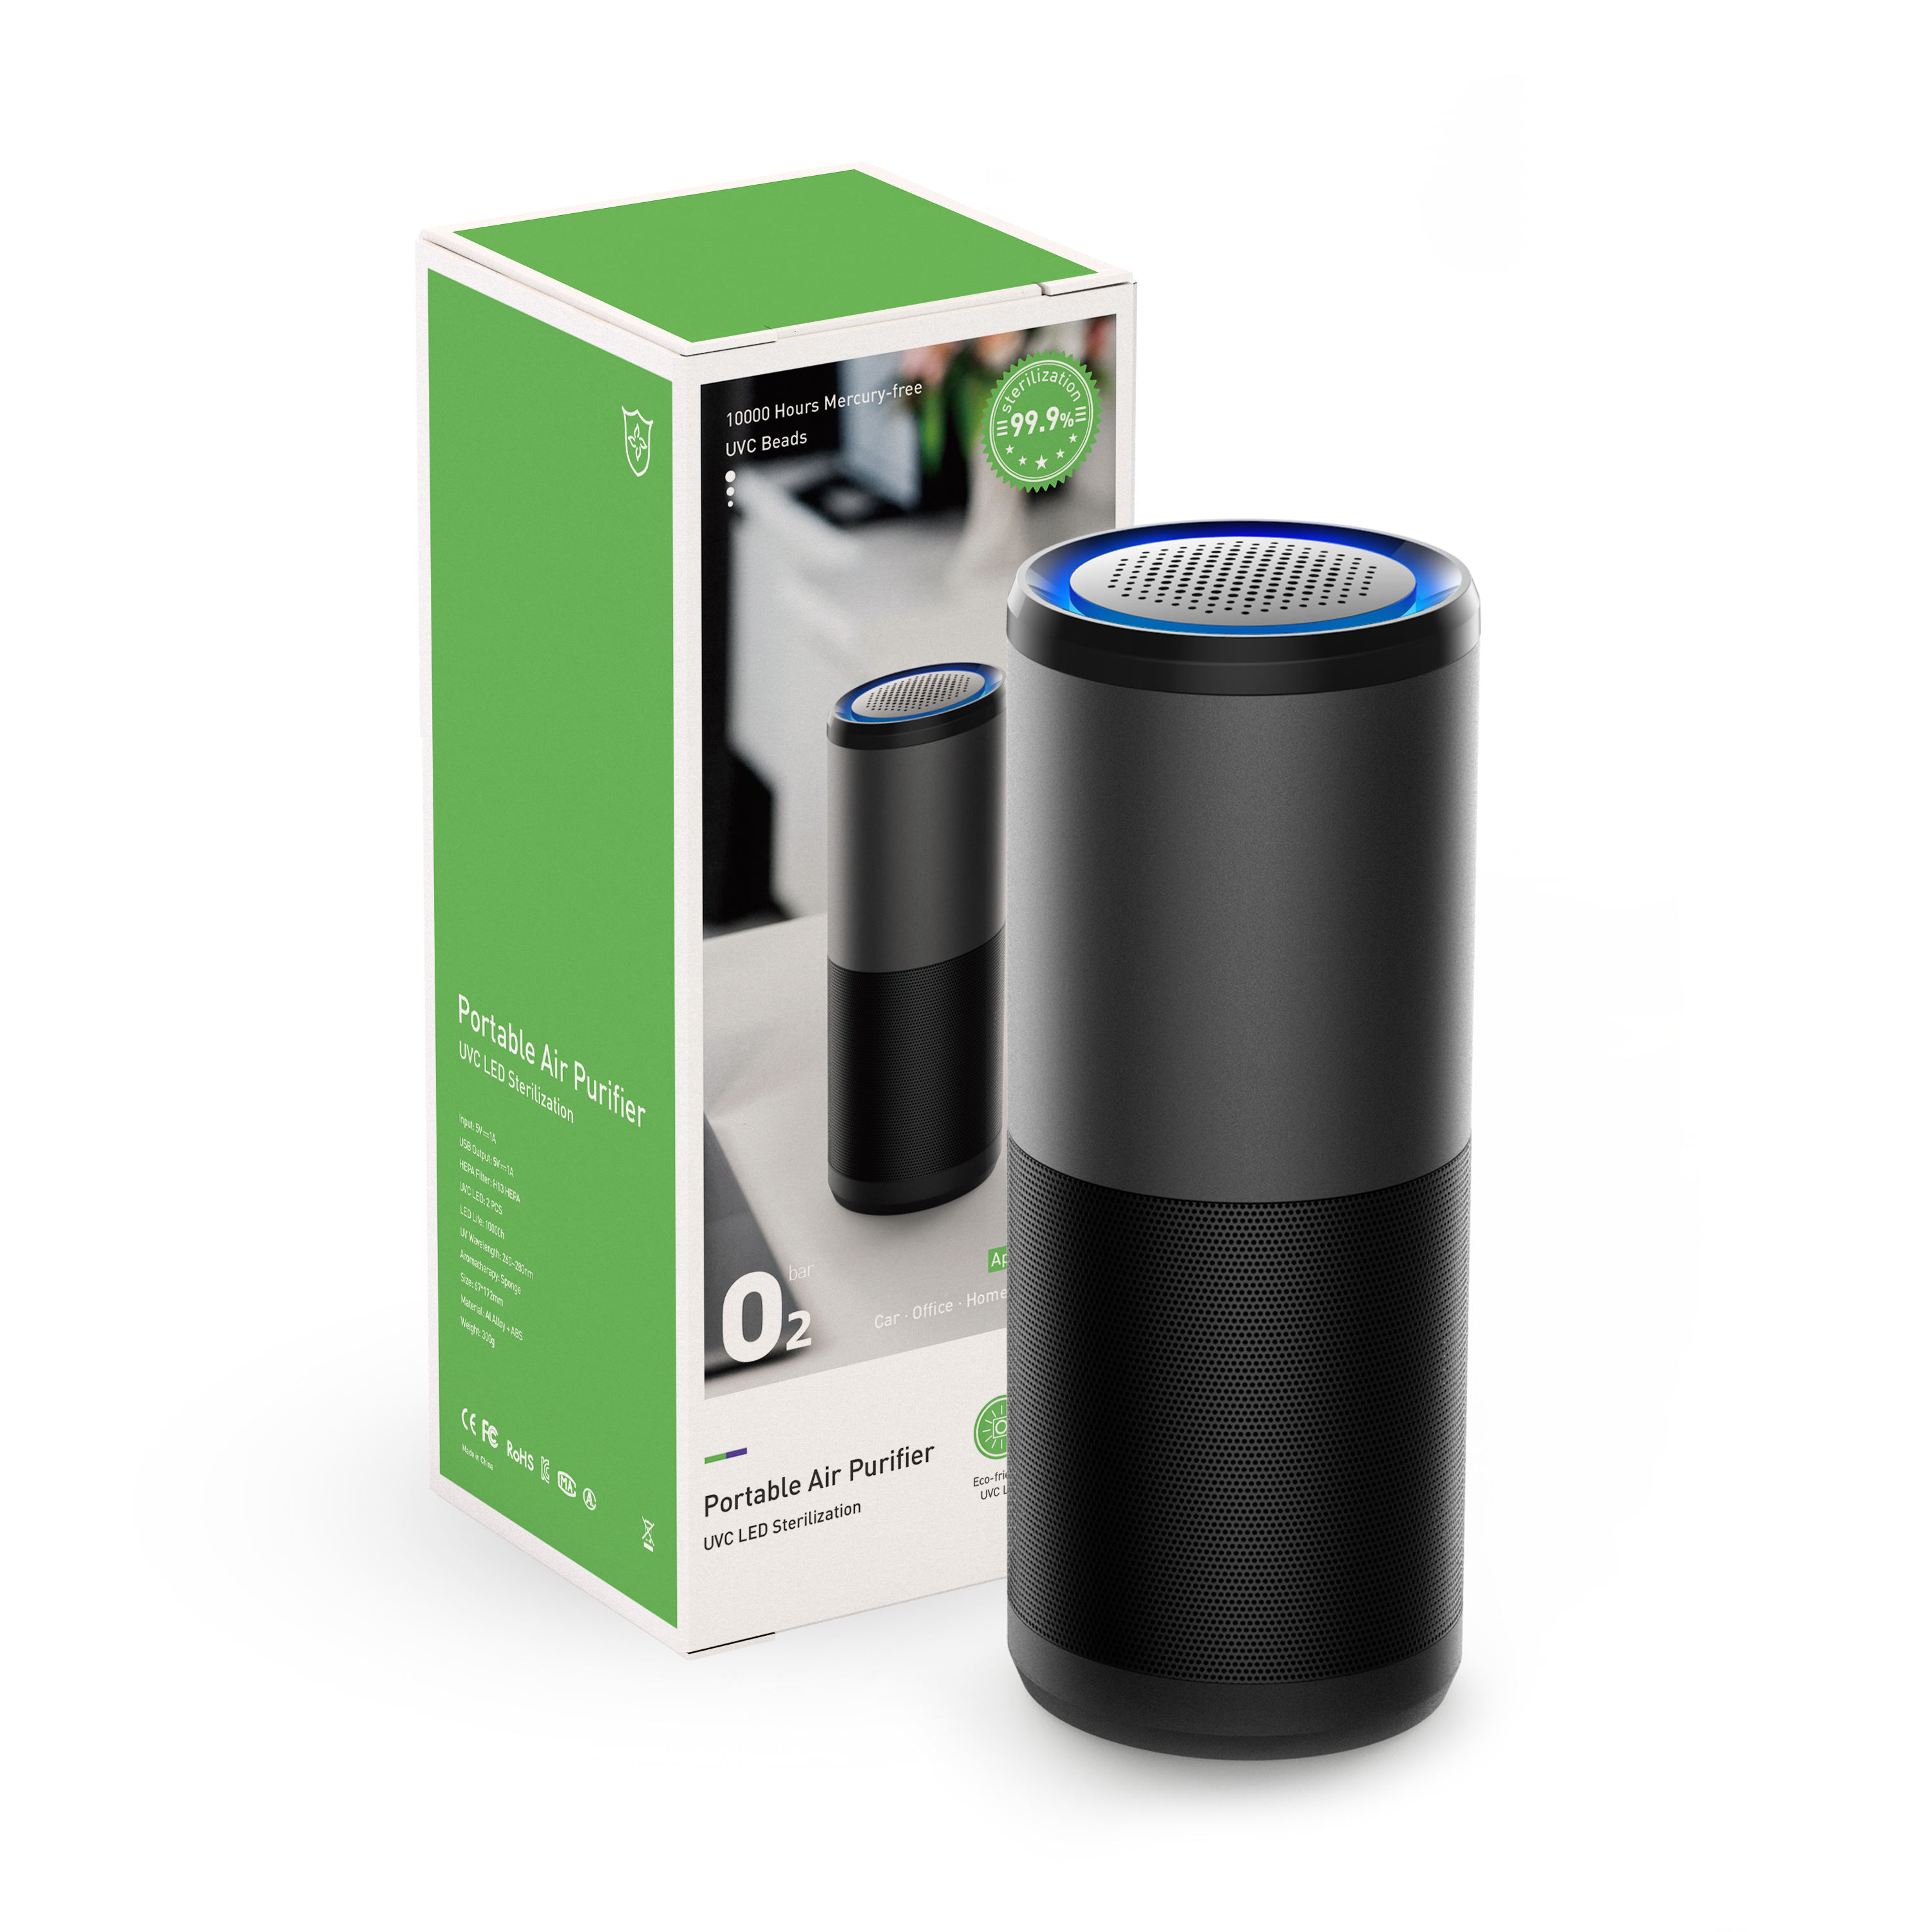 Draagbare Led Licht Uva Uvc Air Cleaner 13 Hepa Filter Voor Thuis Met Aromatherapie Auto Luchtreiniger